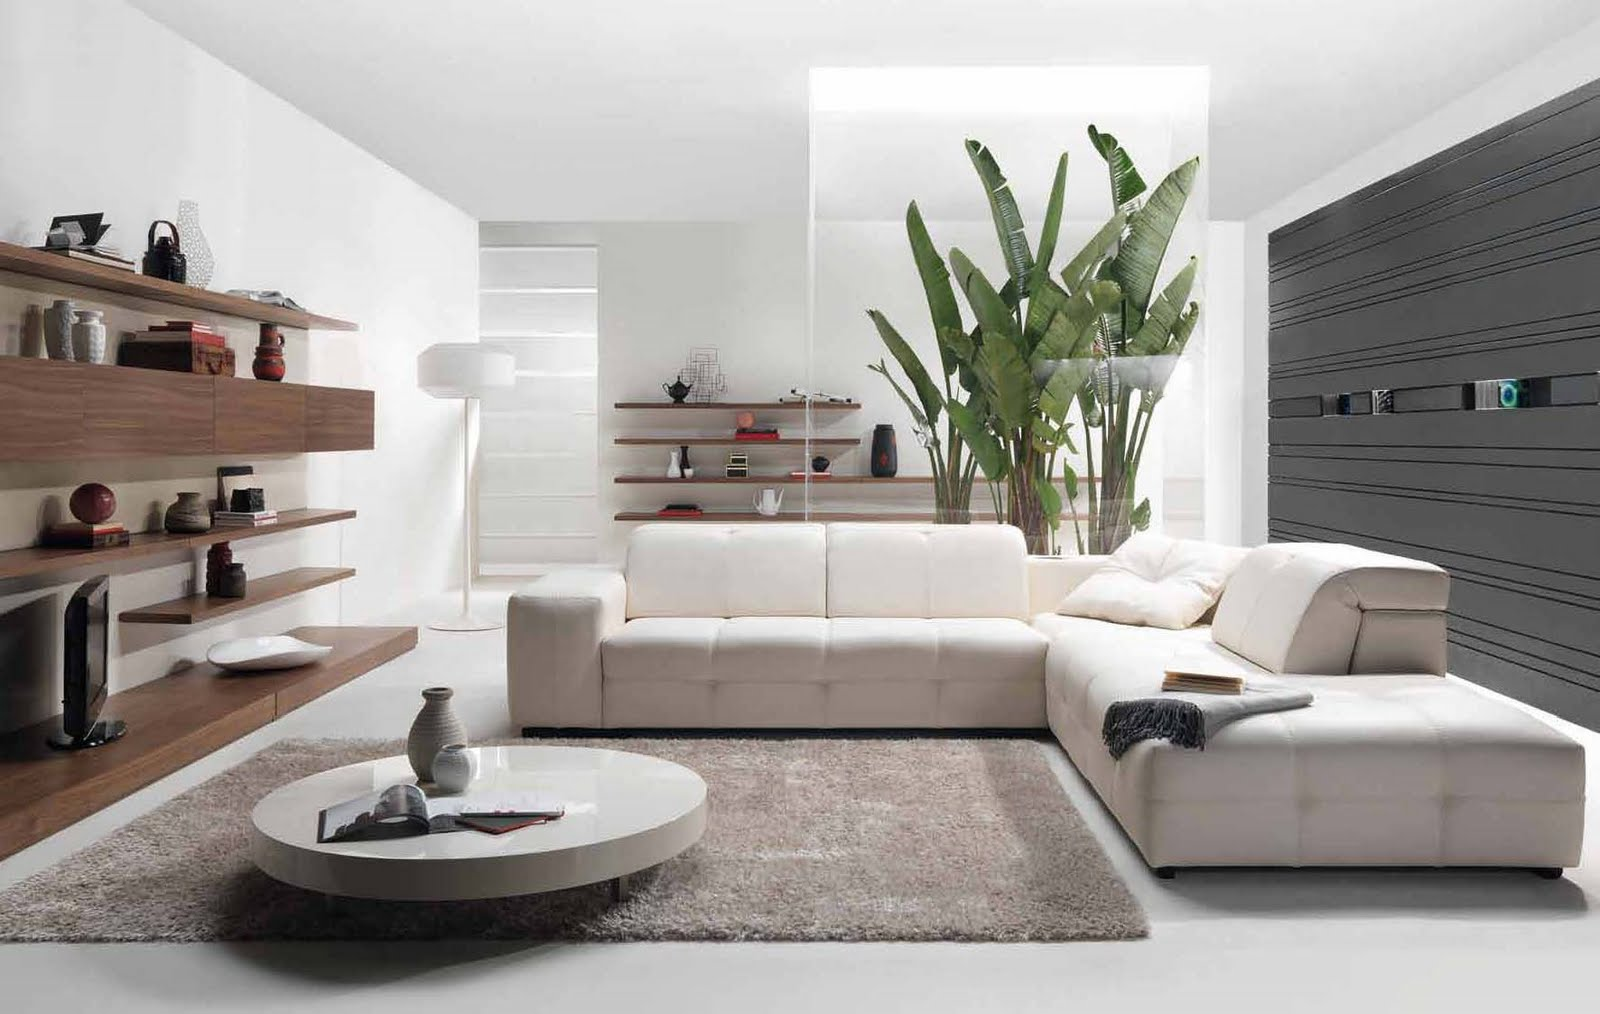 Modern home interior furniture designs diy ideas for Living room remodel ideas